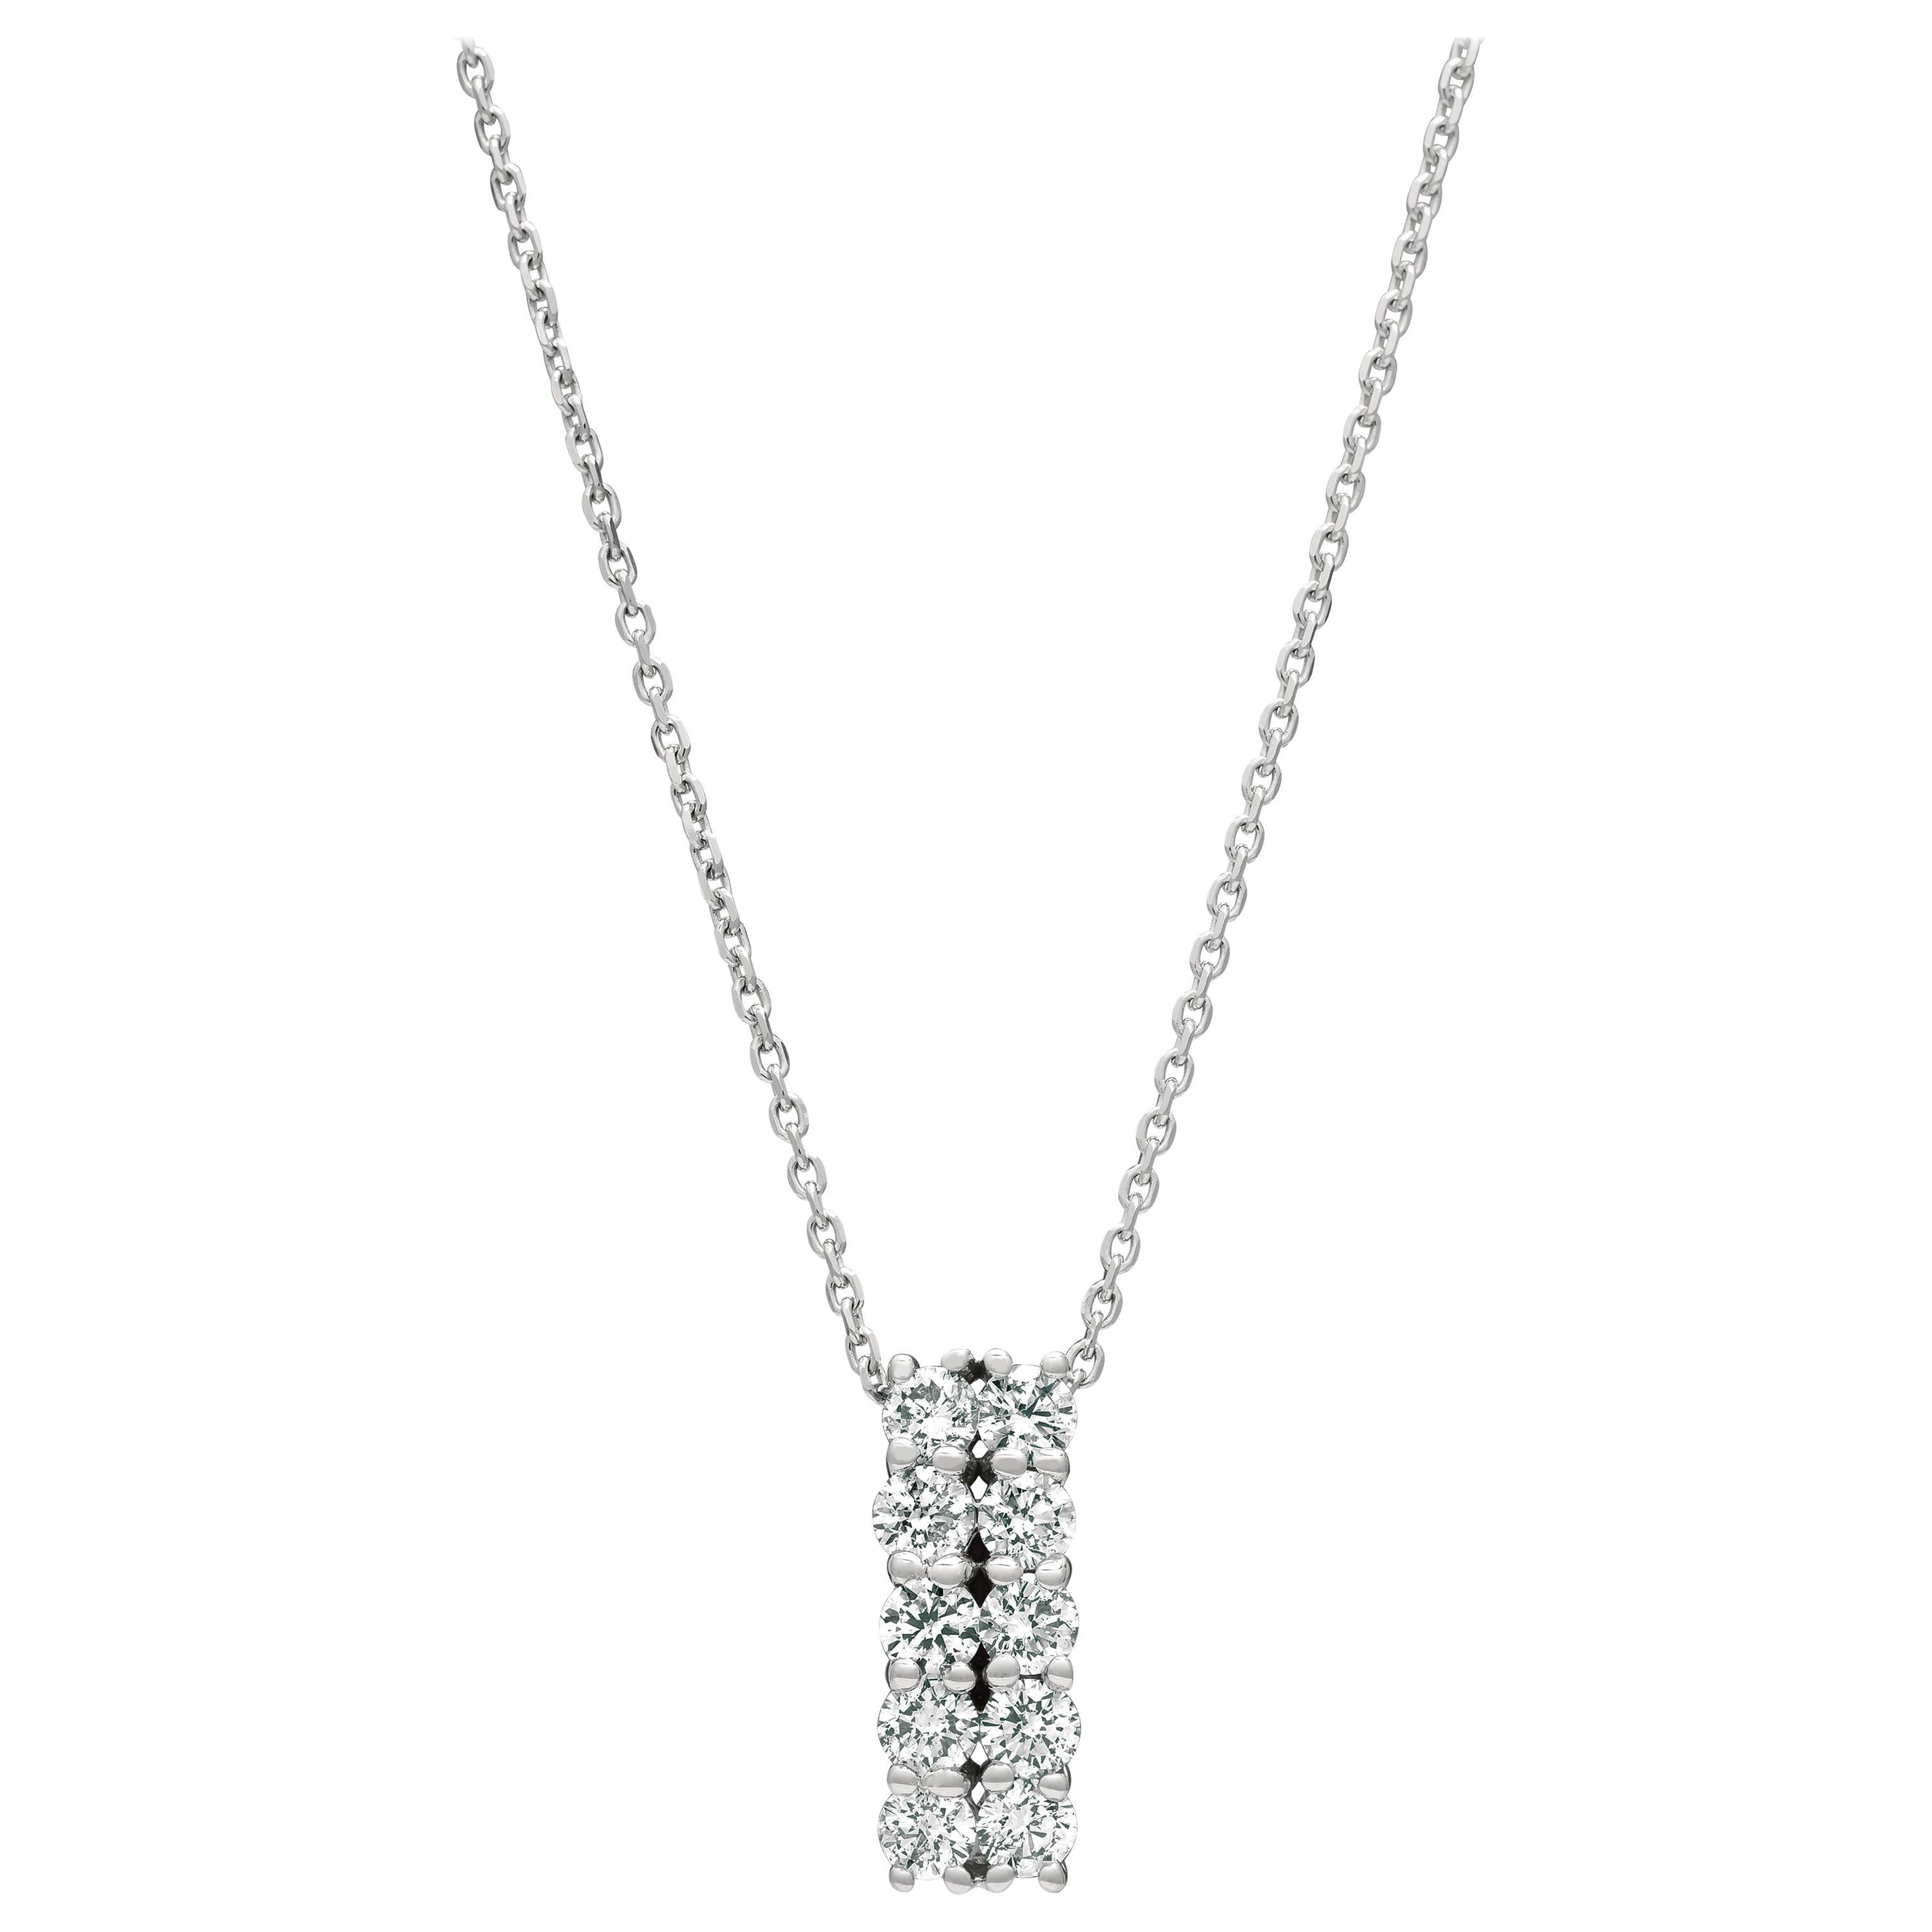 1.00 Carat Natural Diamond Two Rows Necklace 14 Karat White Gold G-H SI